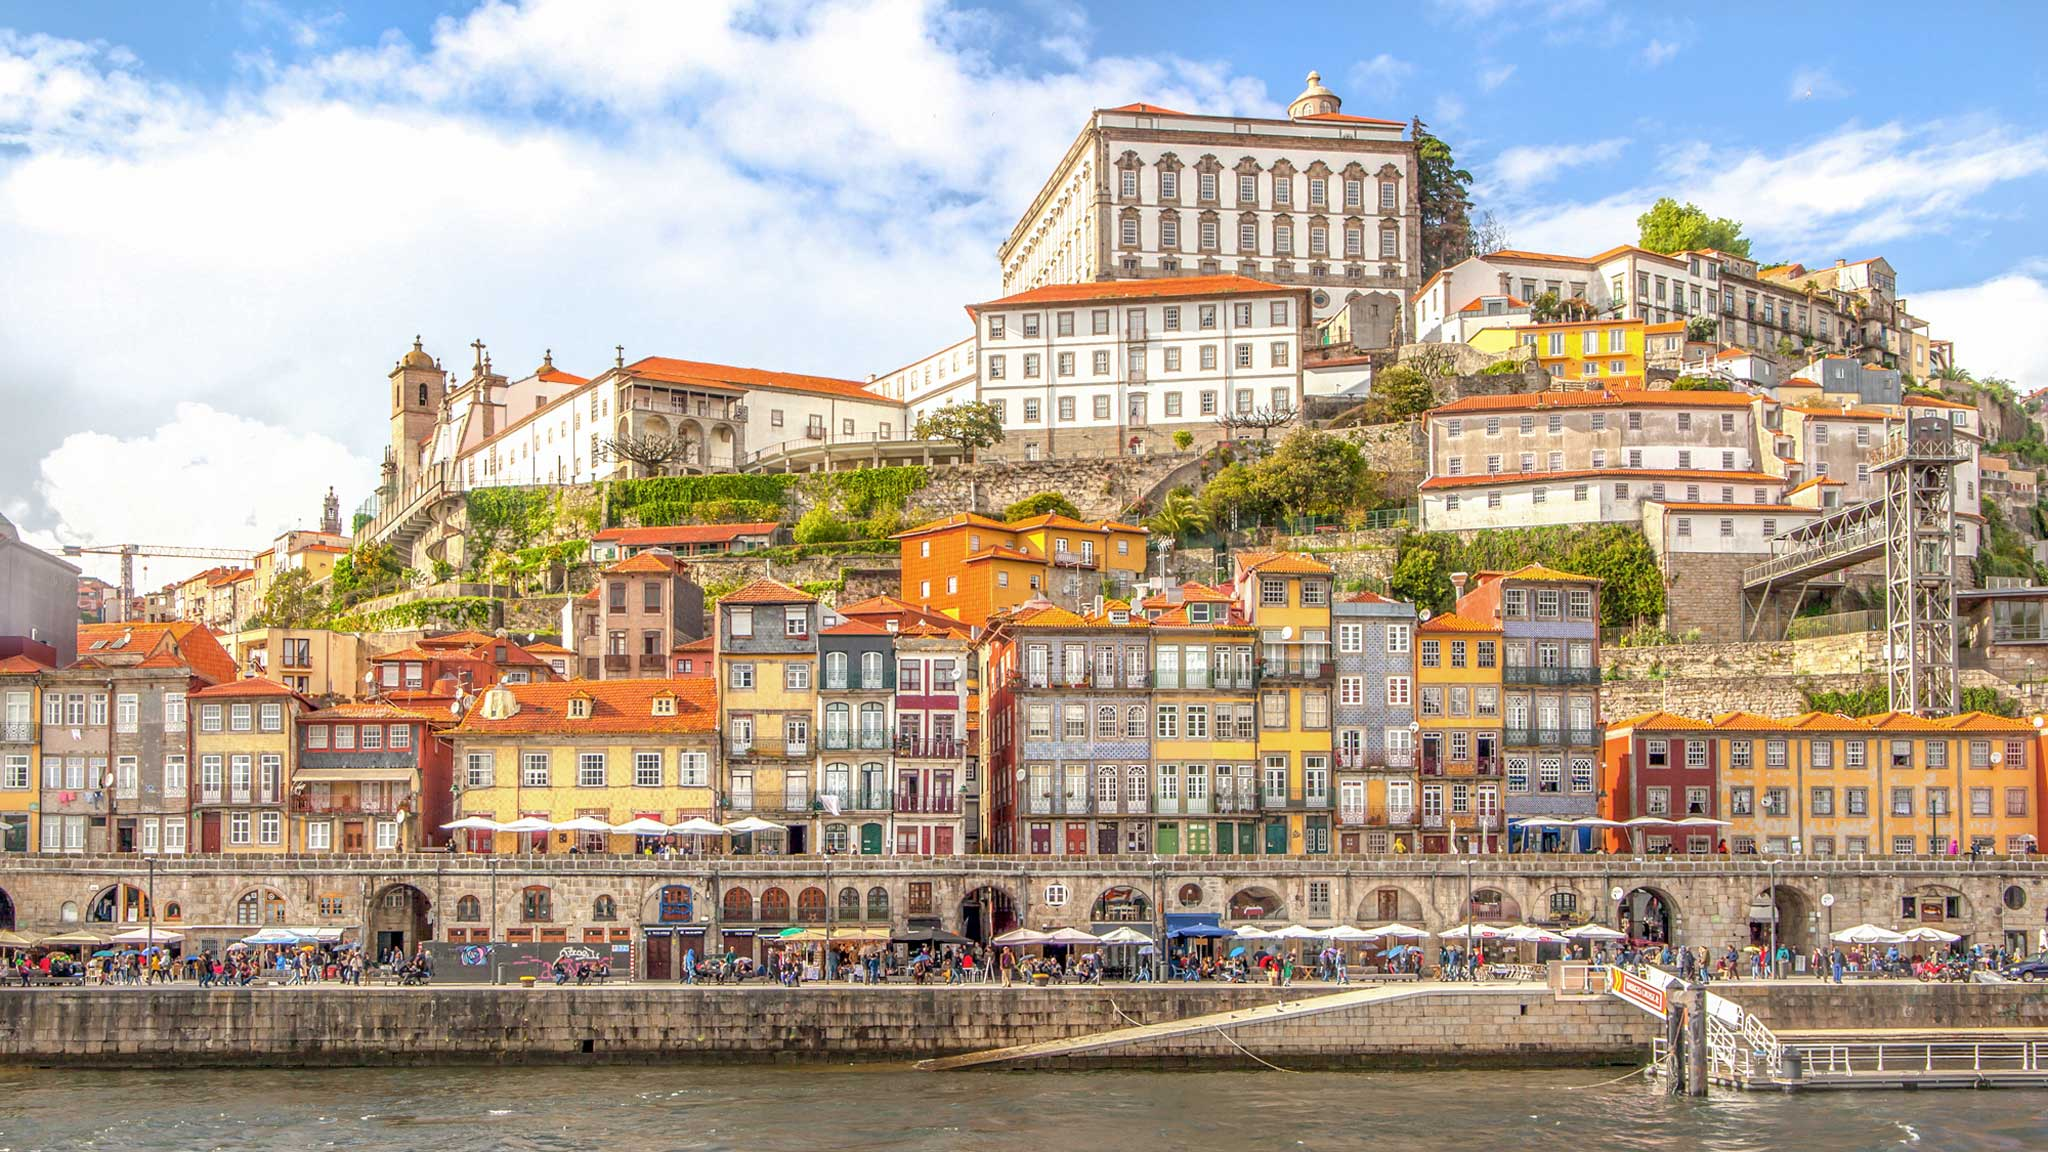 Porto as seen from the river